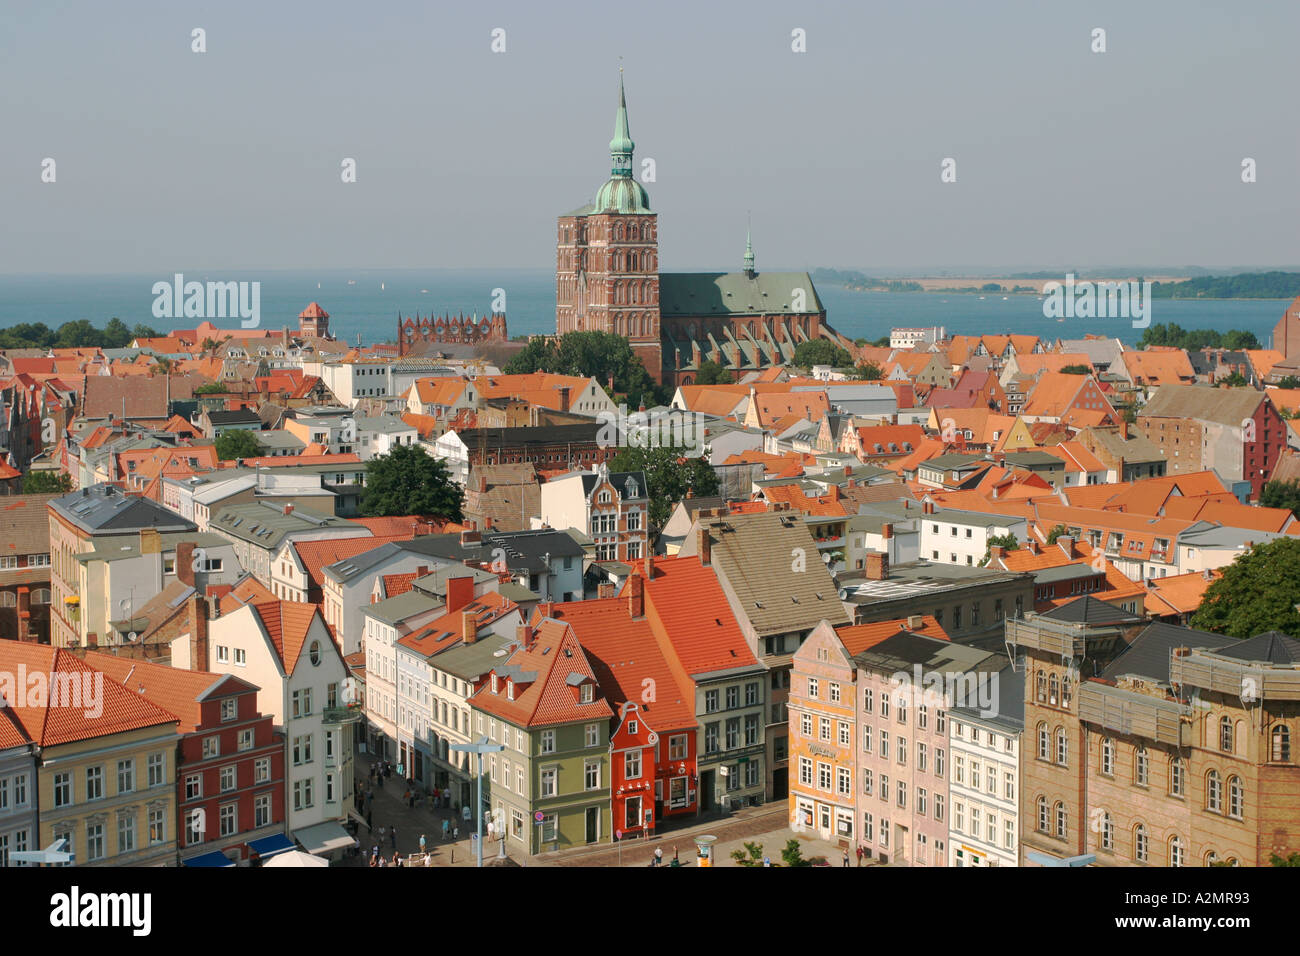 BRD Germany Mecklenburg Vorpommern City Stralsund View from Tower of Mariens Church to Baltic Sea and the Historic City Centre - Stock Image